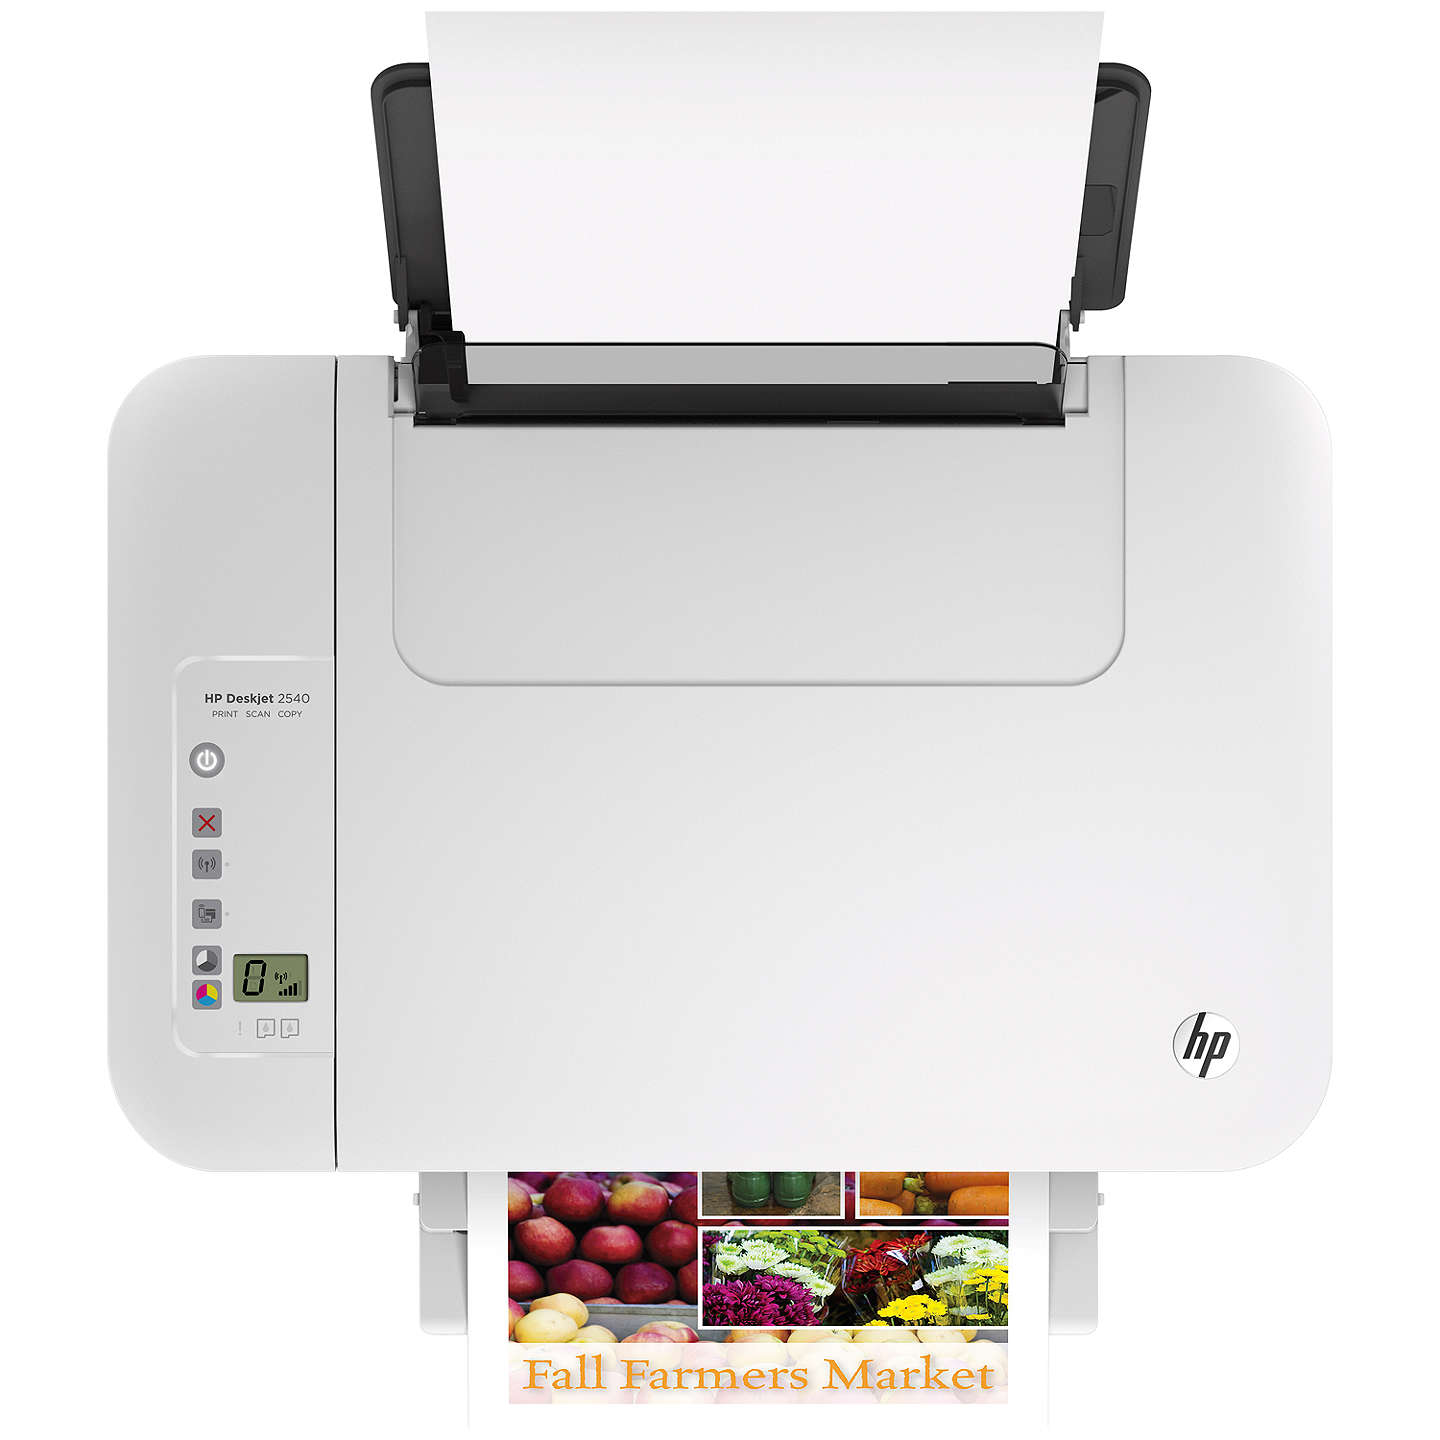 Offer: HP Deskjet 2540 All-in-One Printer at John Lewis